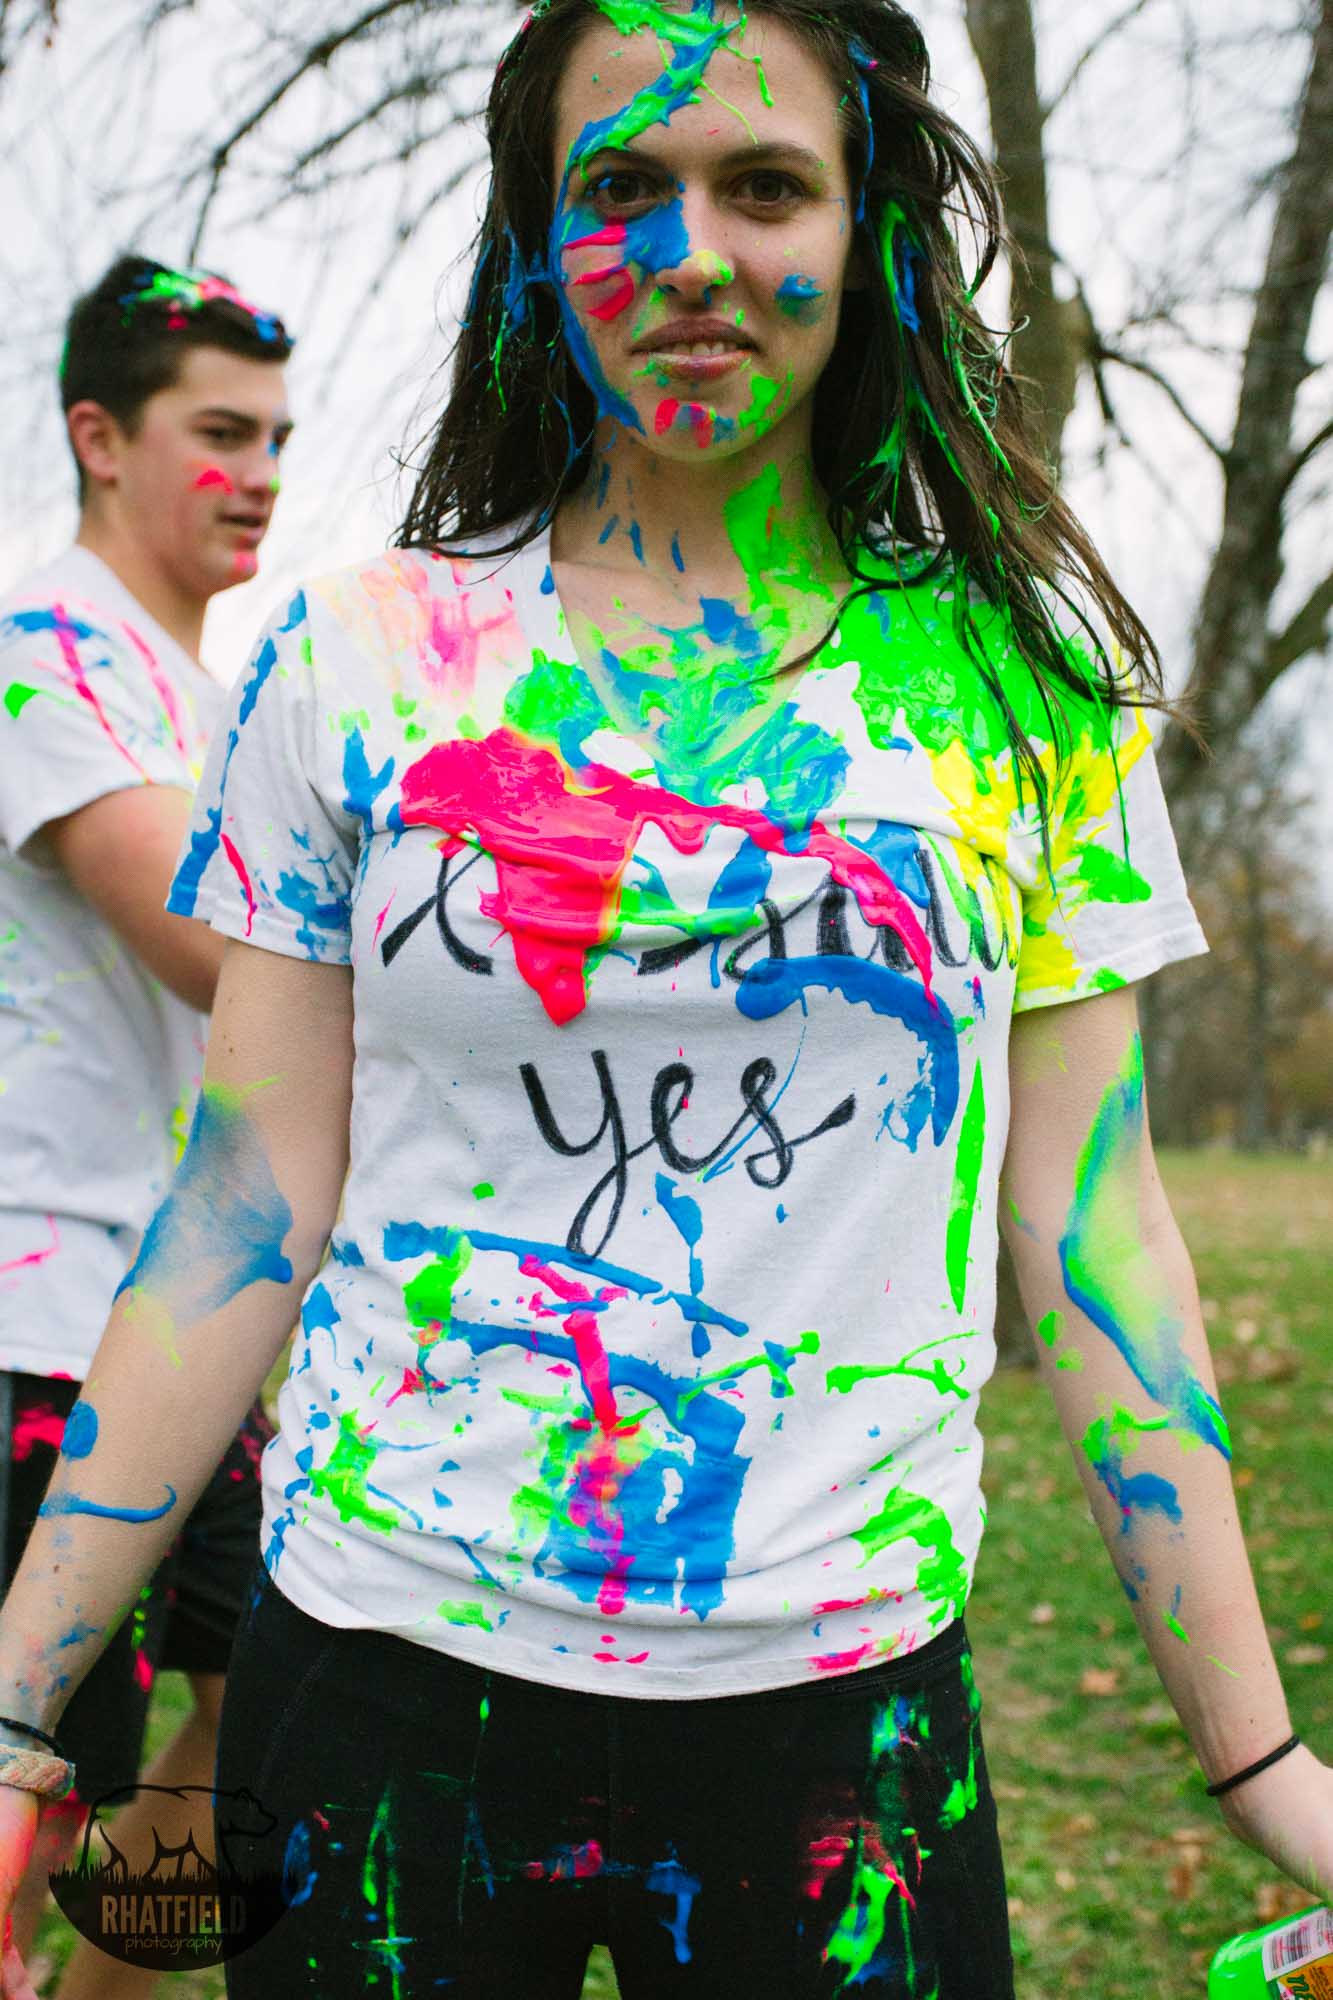 Allison and Austin Paint War Engagements